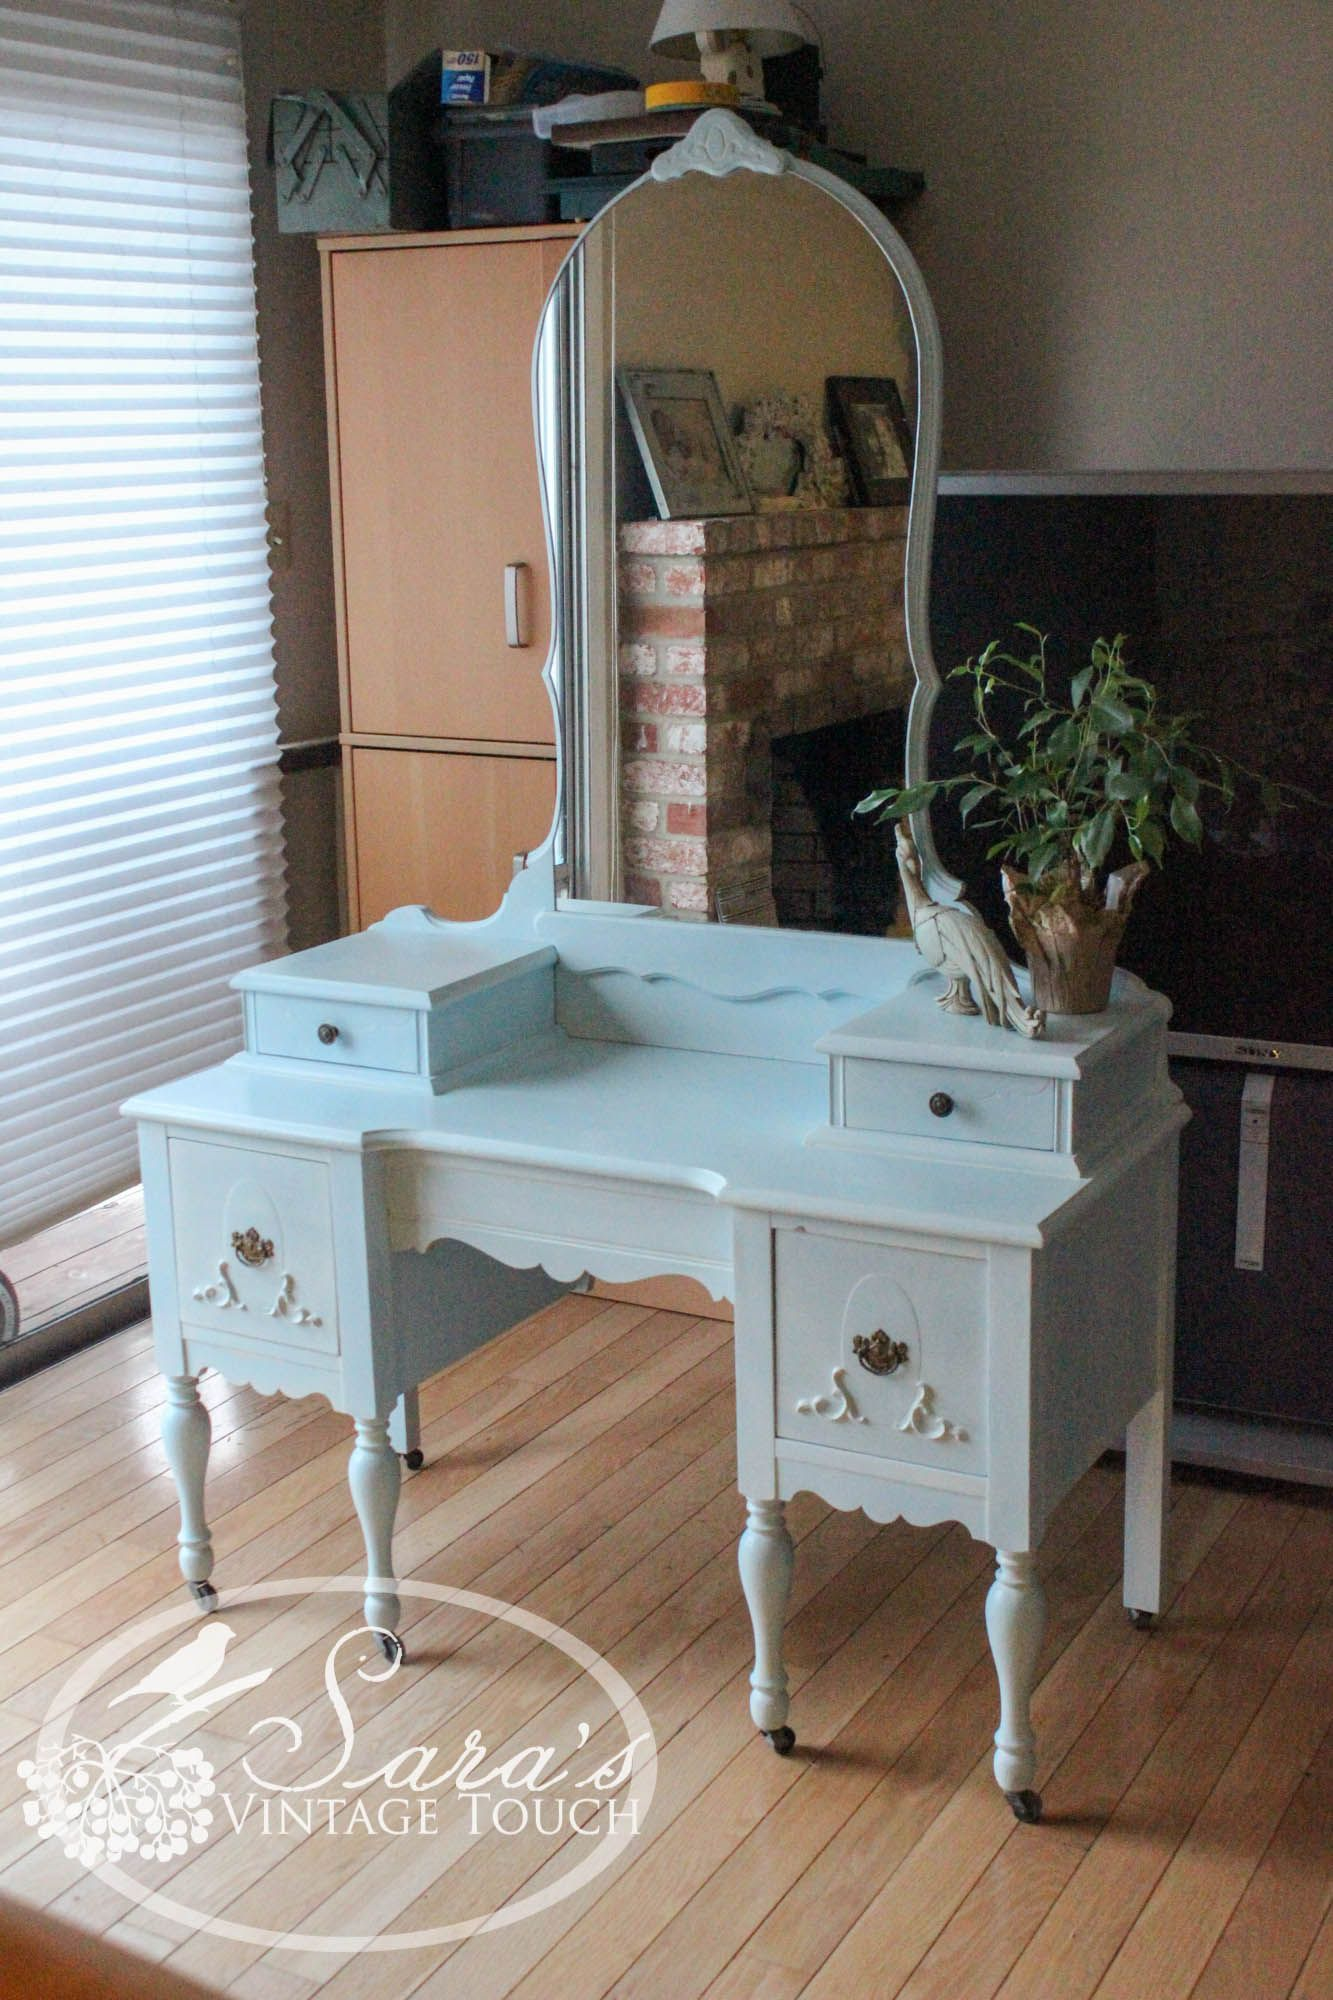 Antique makeup vanity dressing table Refinished in Maison